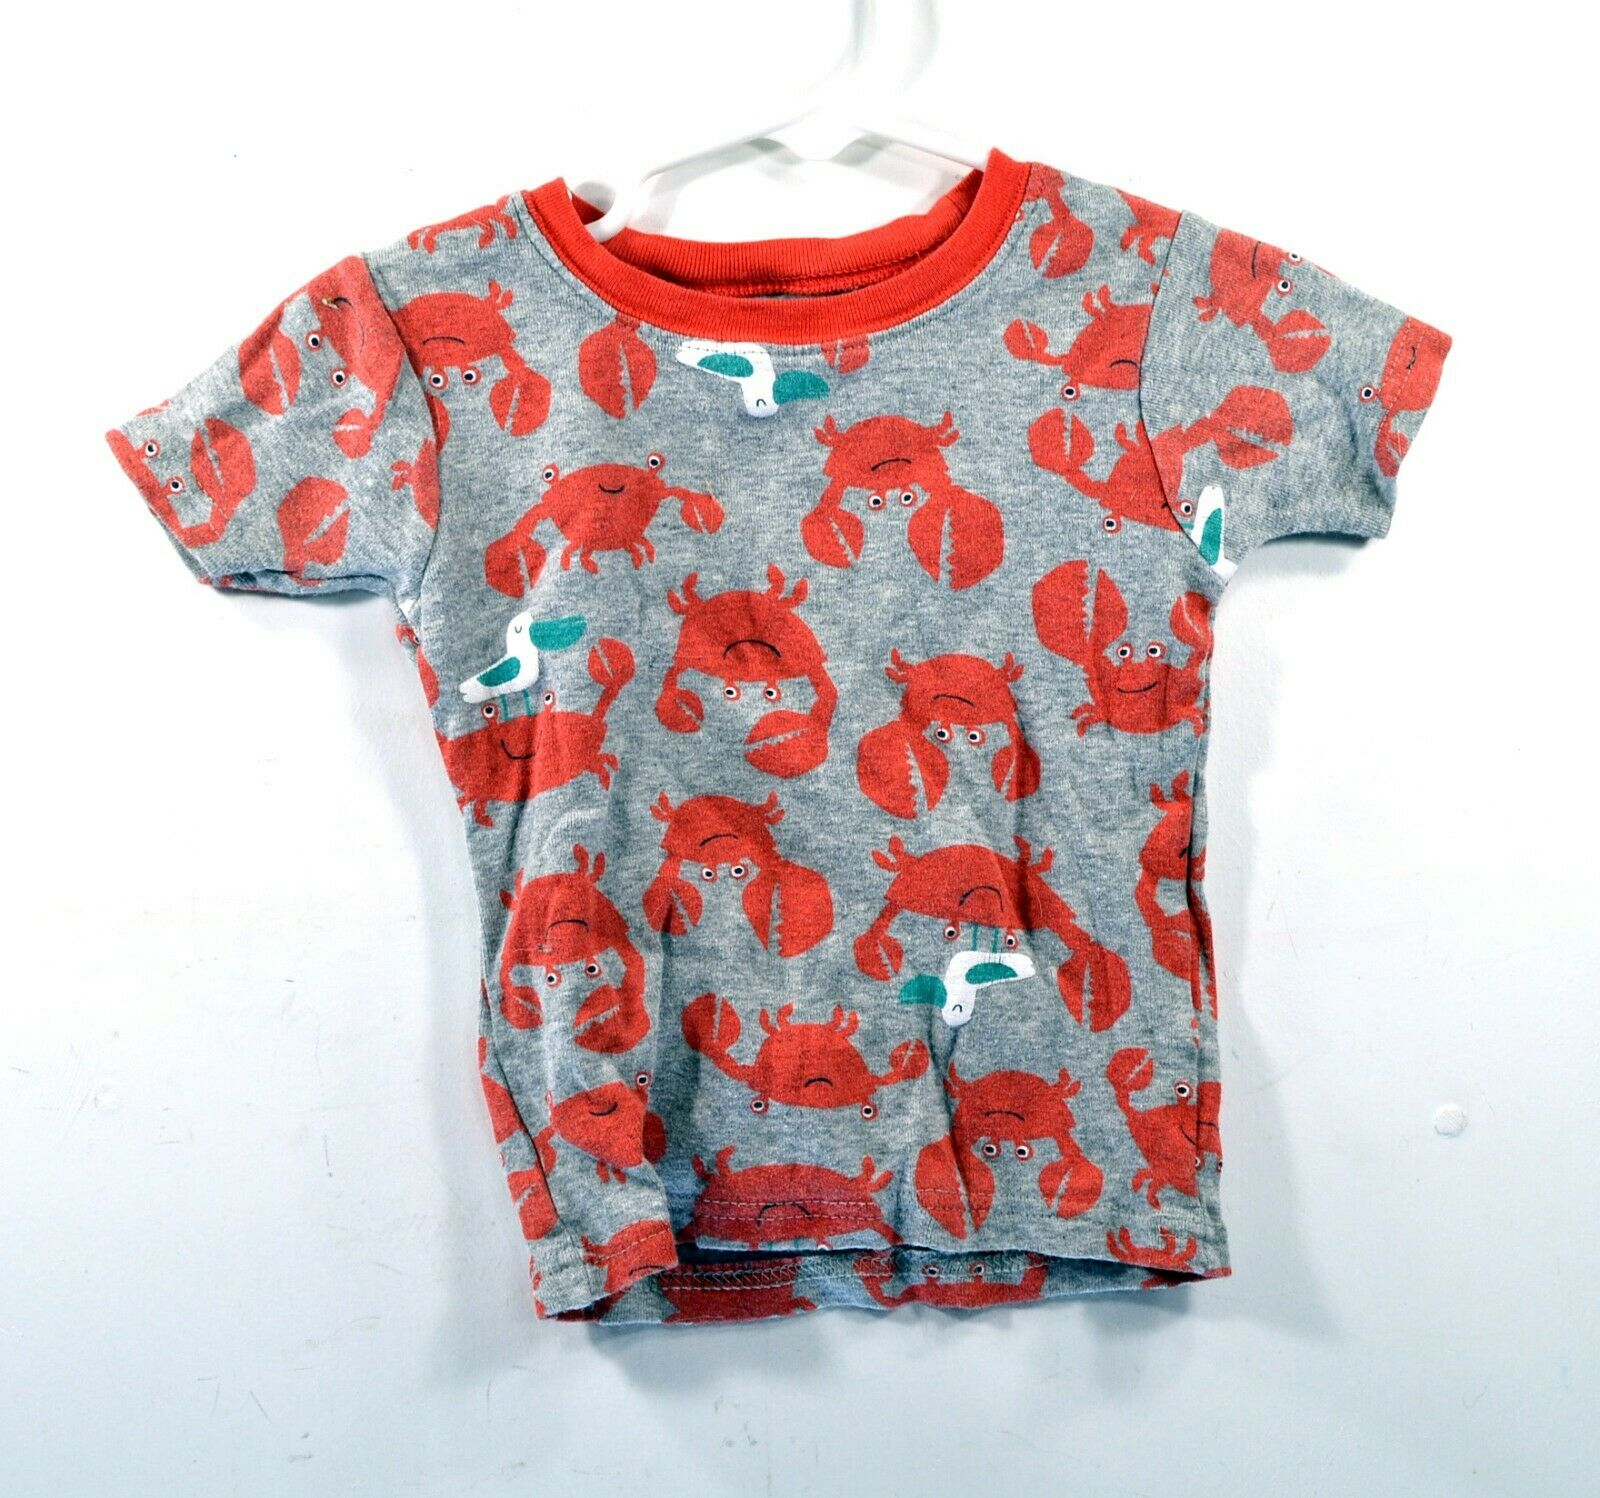 Carters Crab T-shirt - Toddler 2T - Gray - Crabs and Seagulls